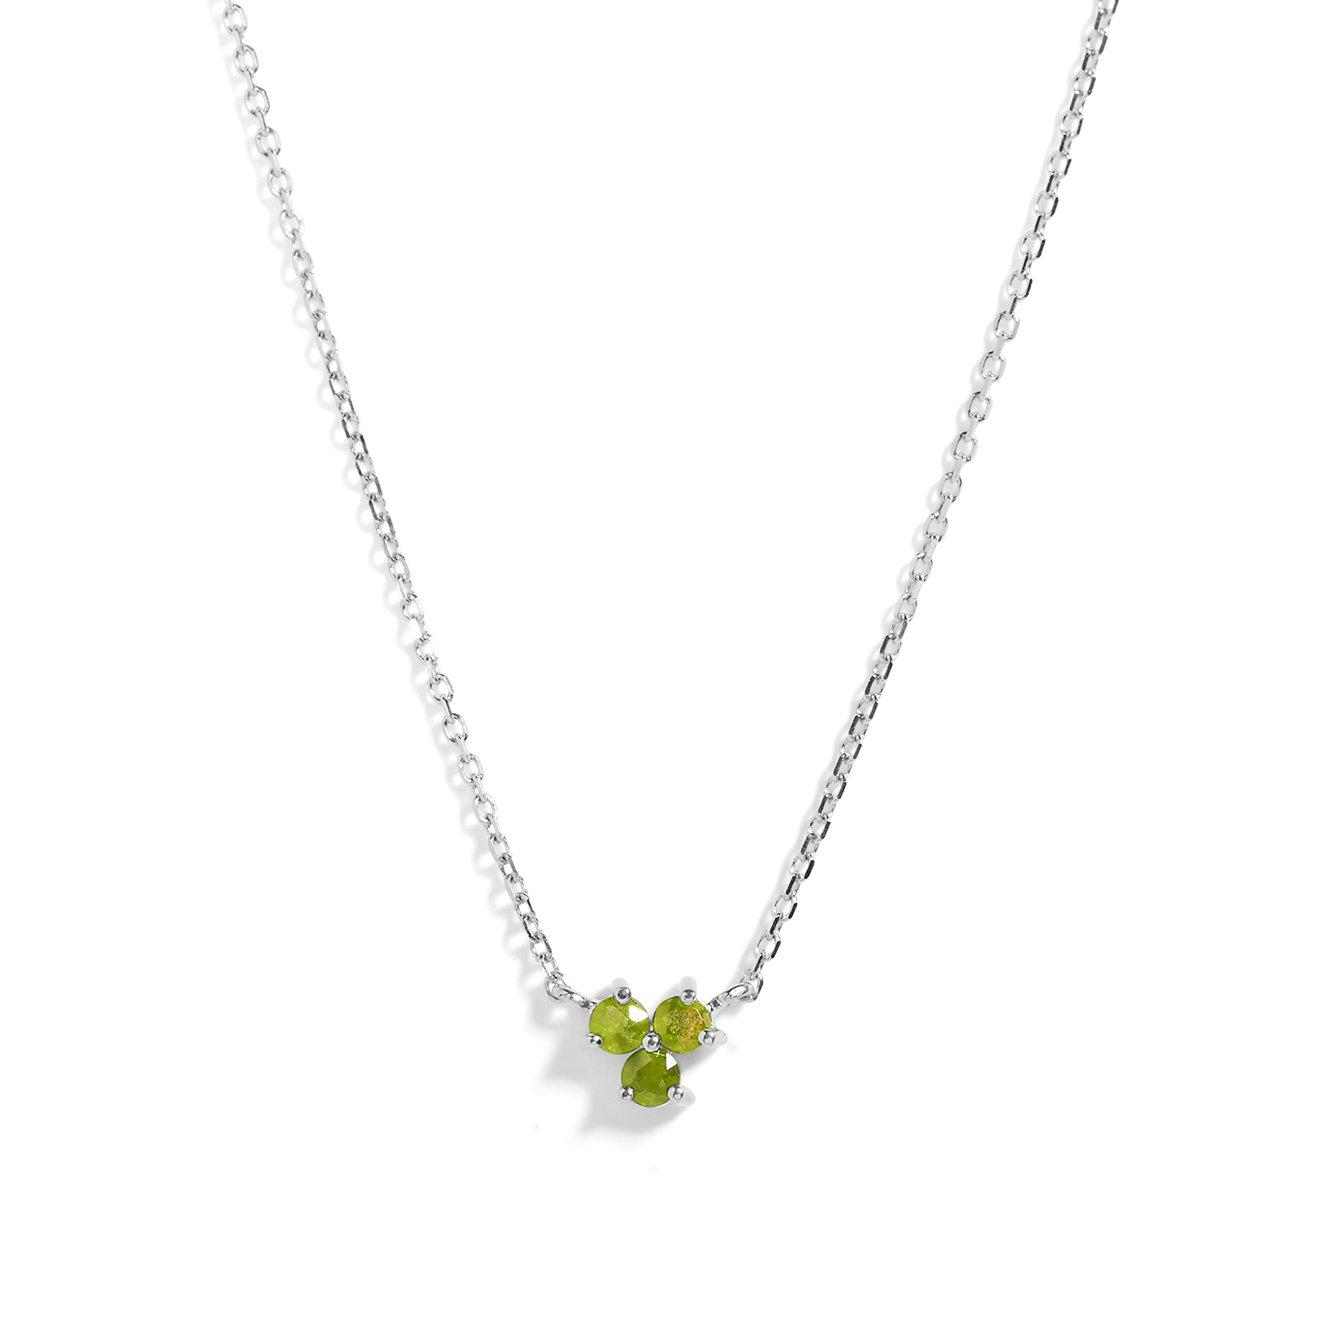 The Trio Peridot Necklace in Silver